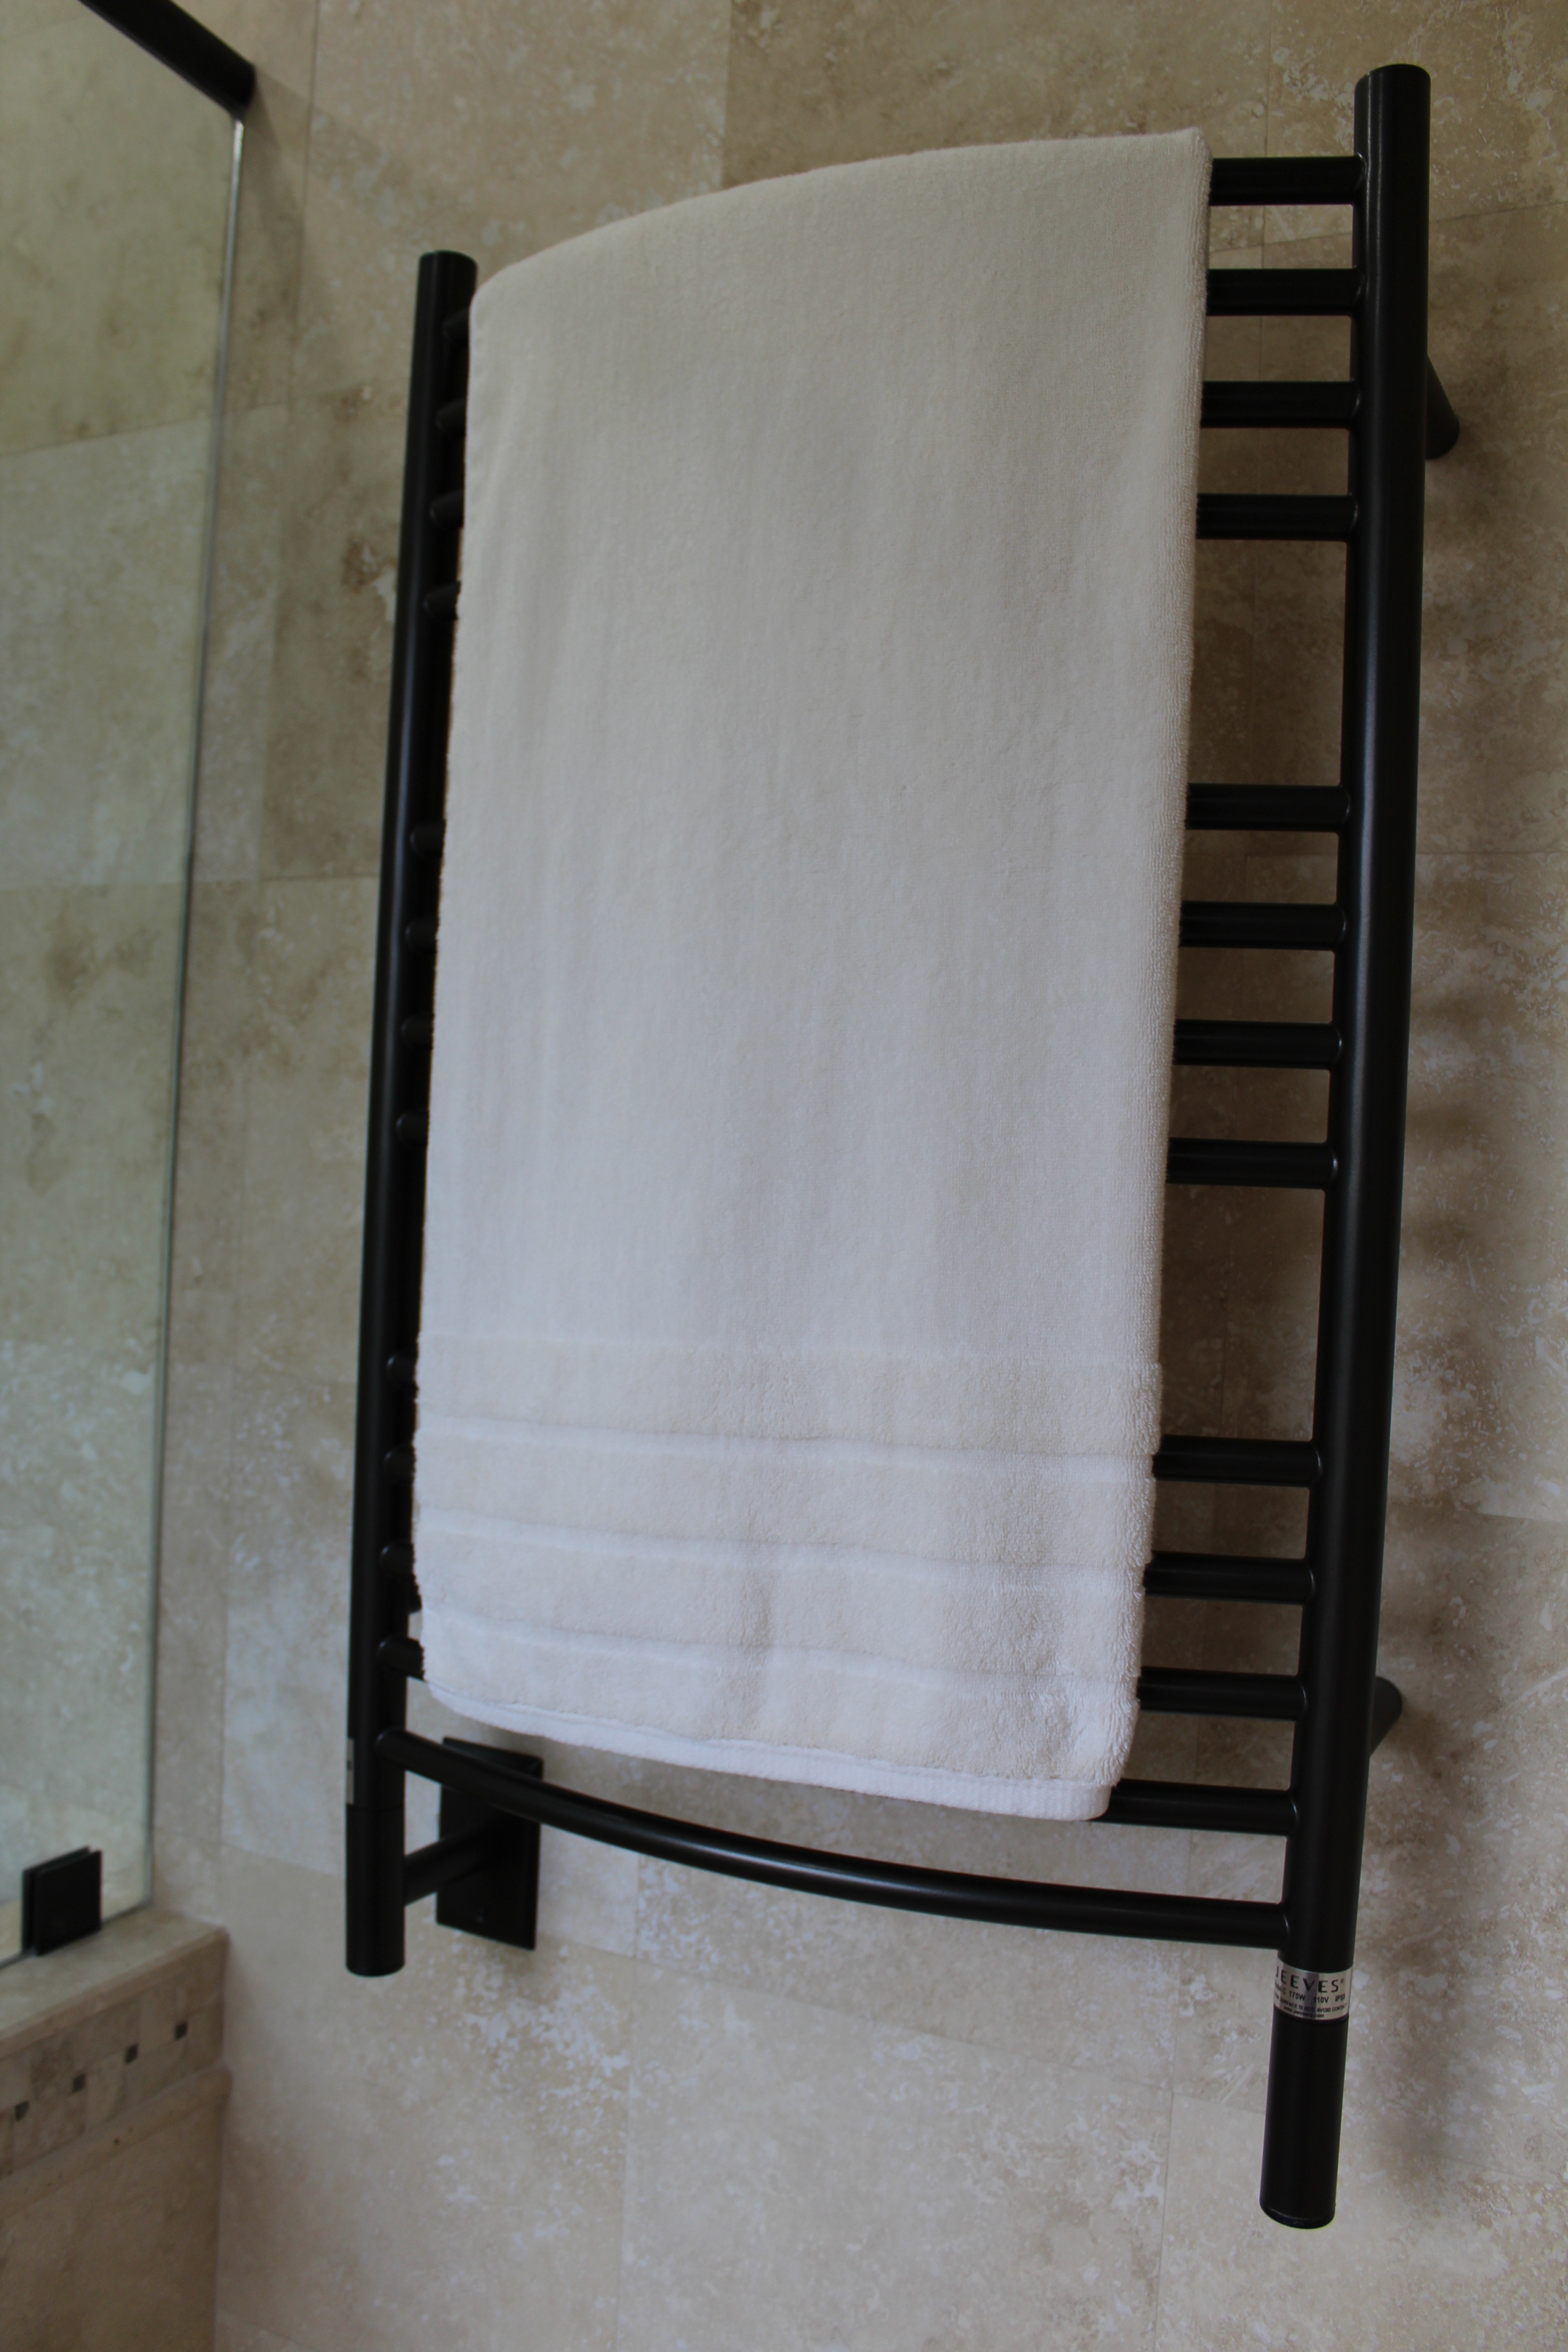 New towel warmer